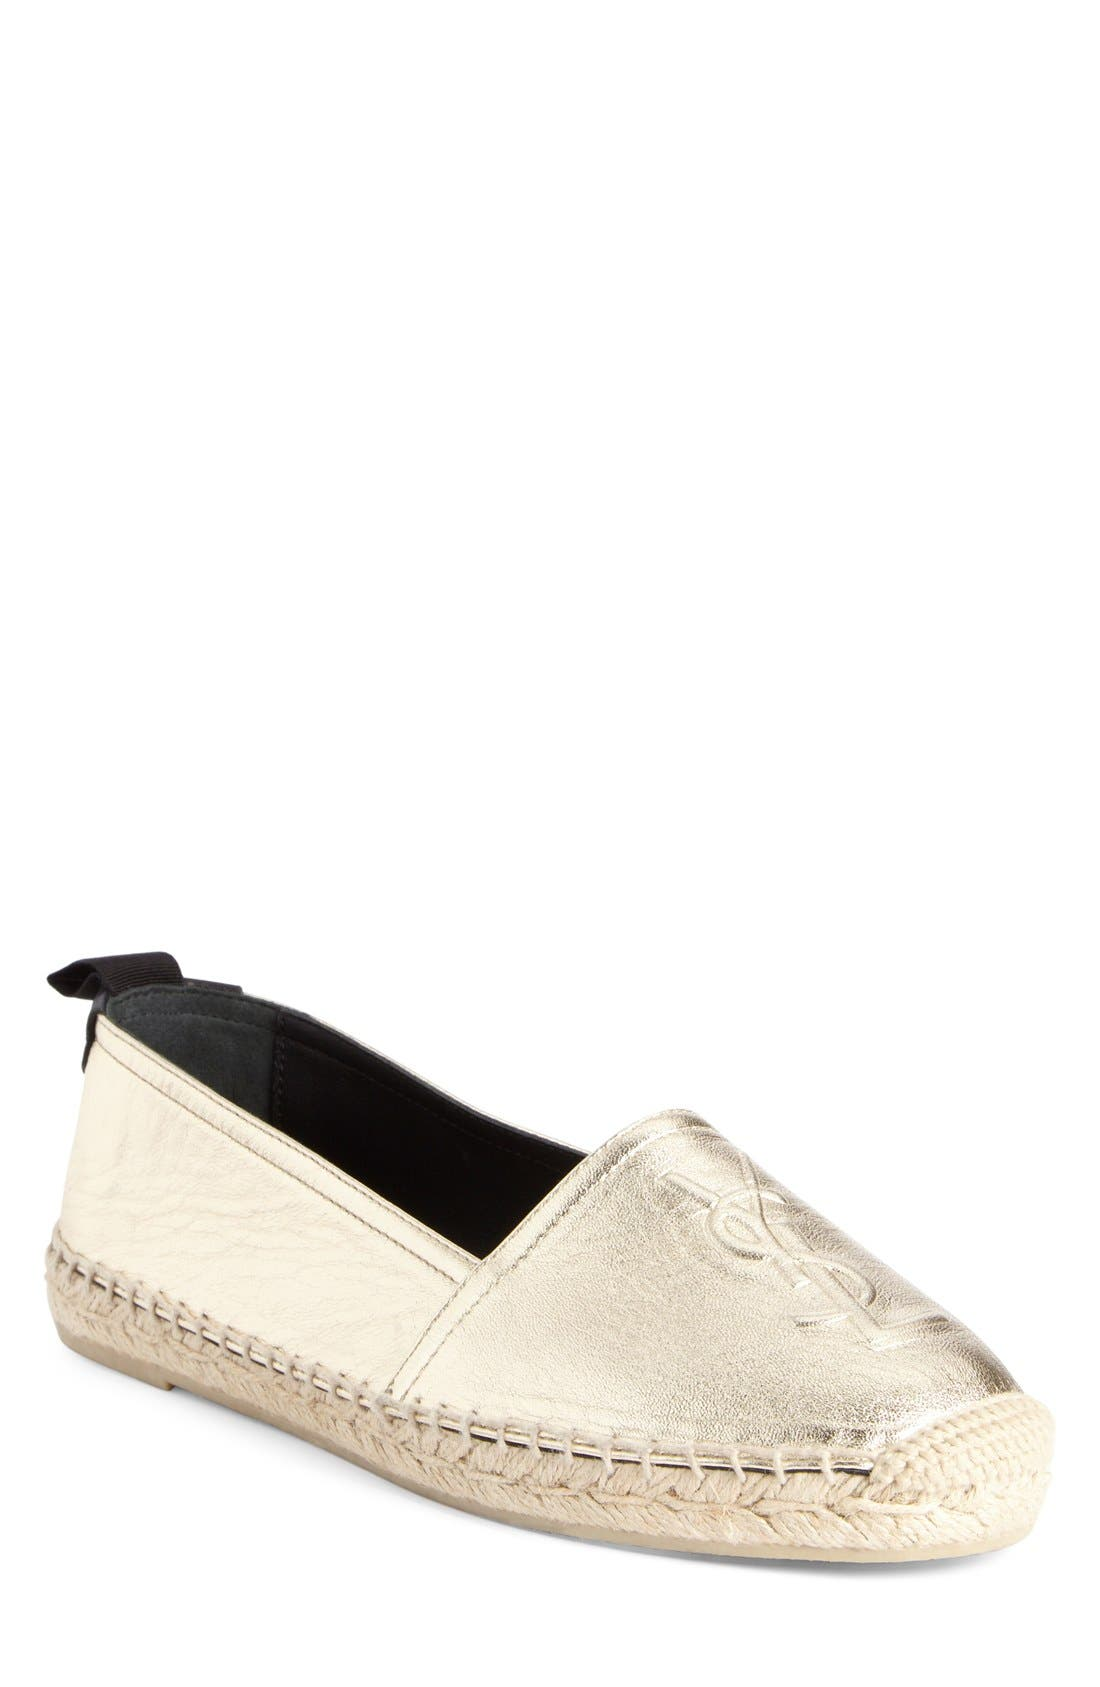 Saint Laurent Logo Espadrille (Women)